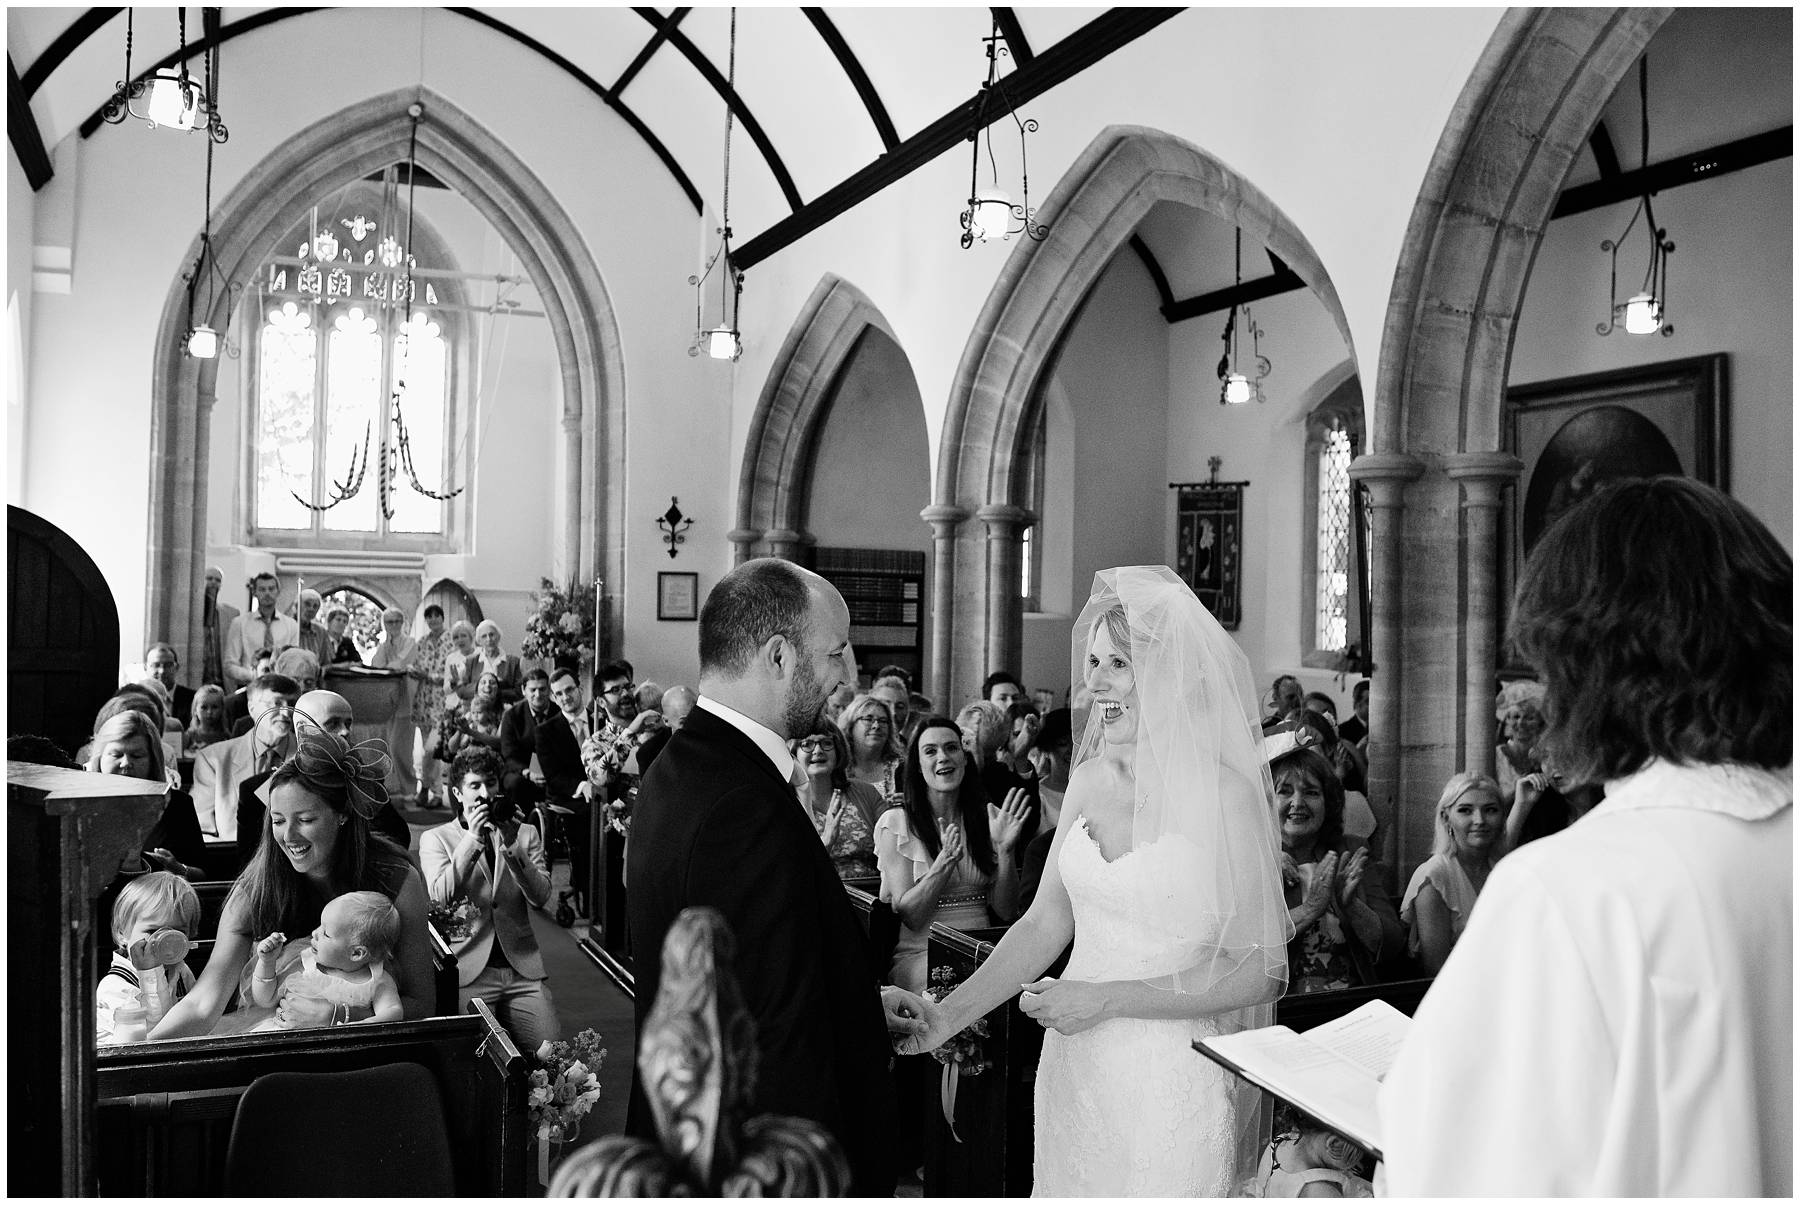 Wedding at St Michael's Church, Chaffcombe